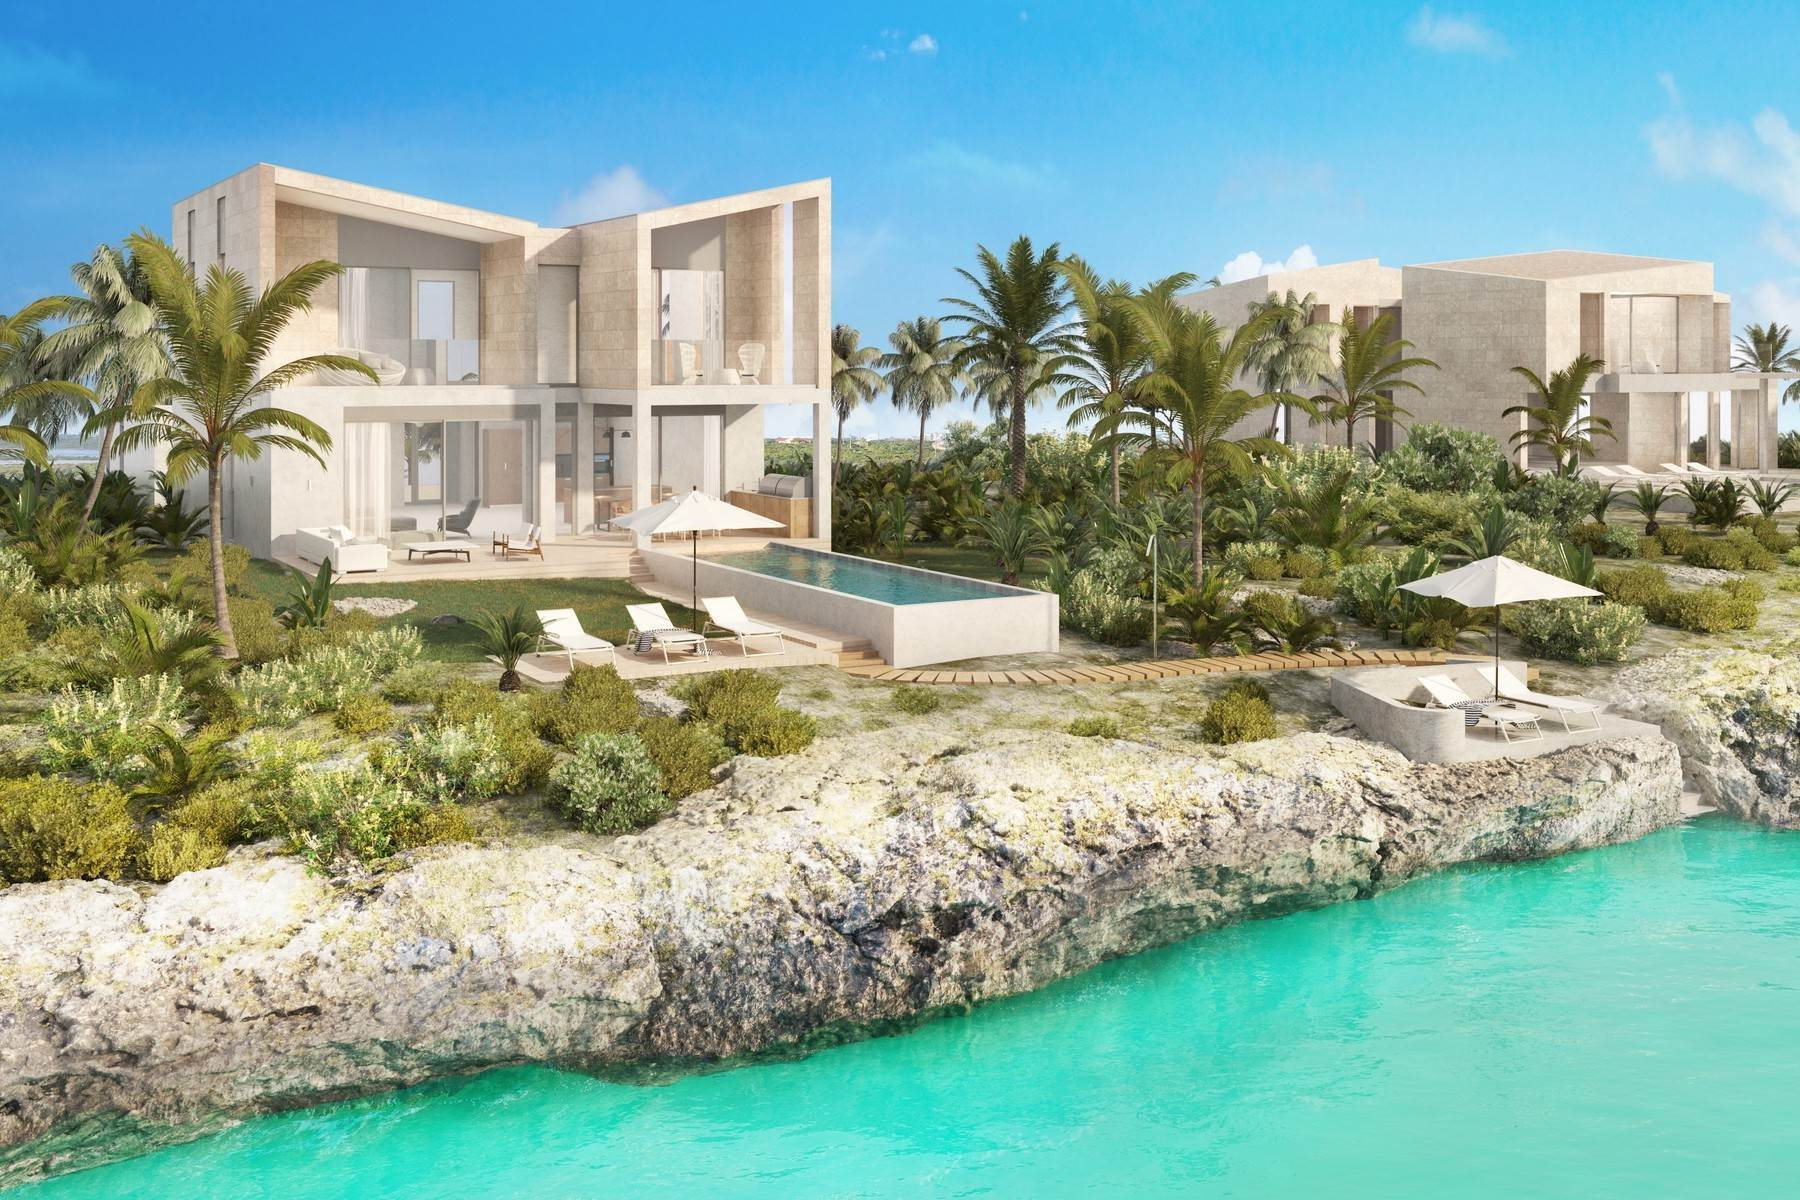 2. Single Family Homes for Sale at SOUTH BANK - THE OCEAN ESTATE II - REEF VILLA - VILLA 19 South Bank, Long Bay, Providenciales Turks And Caicos Islands